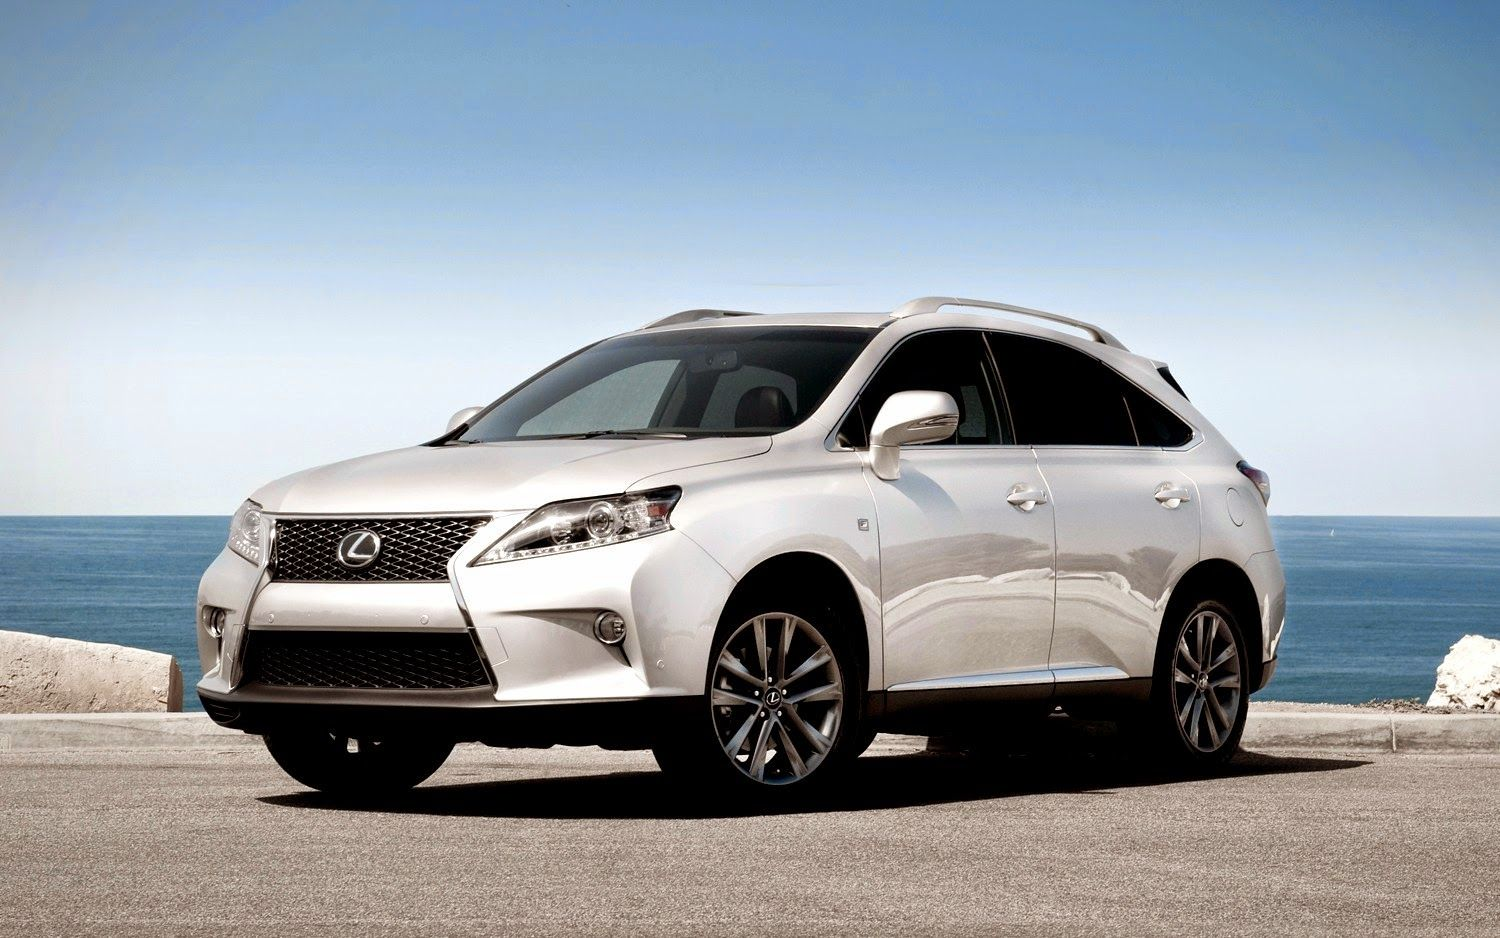 Today lexus is giving us a new 2016 lexus rx 350 one of the best selling luxury crossovers